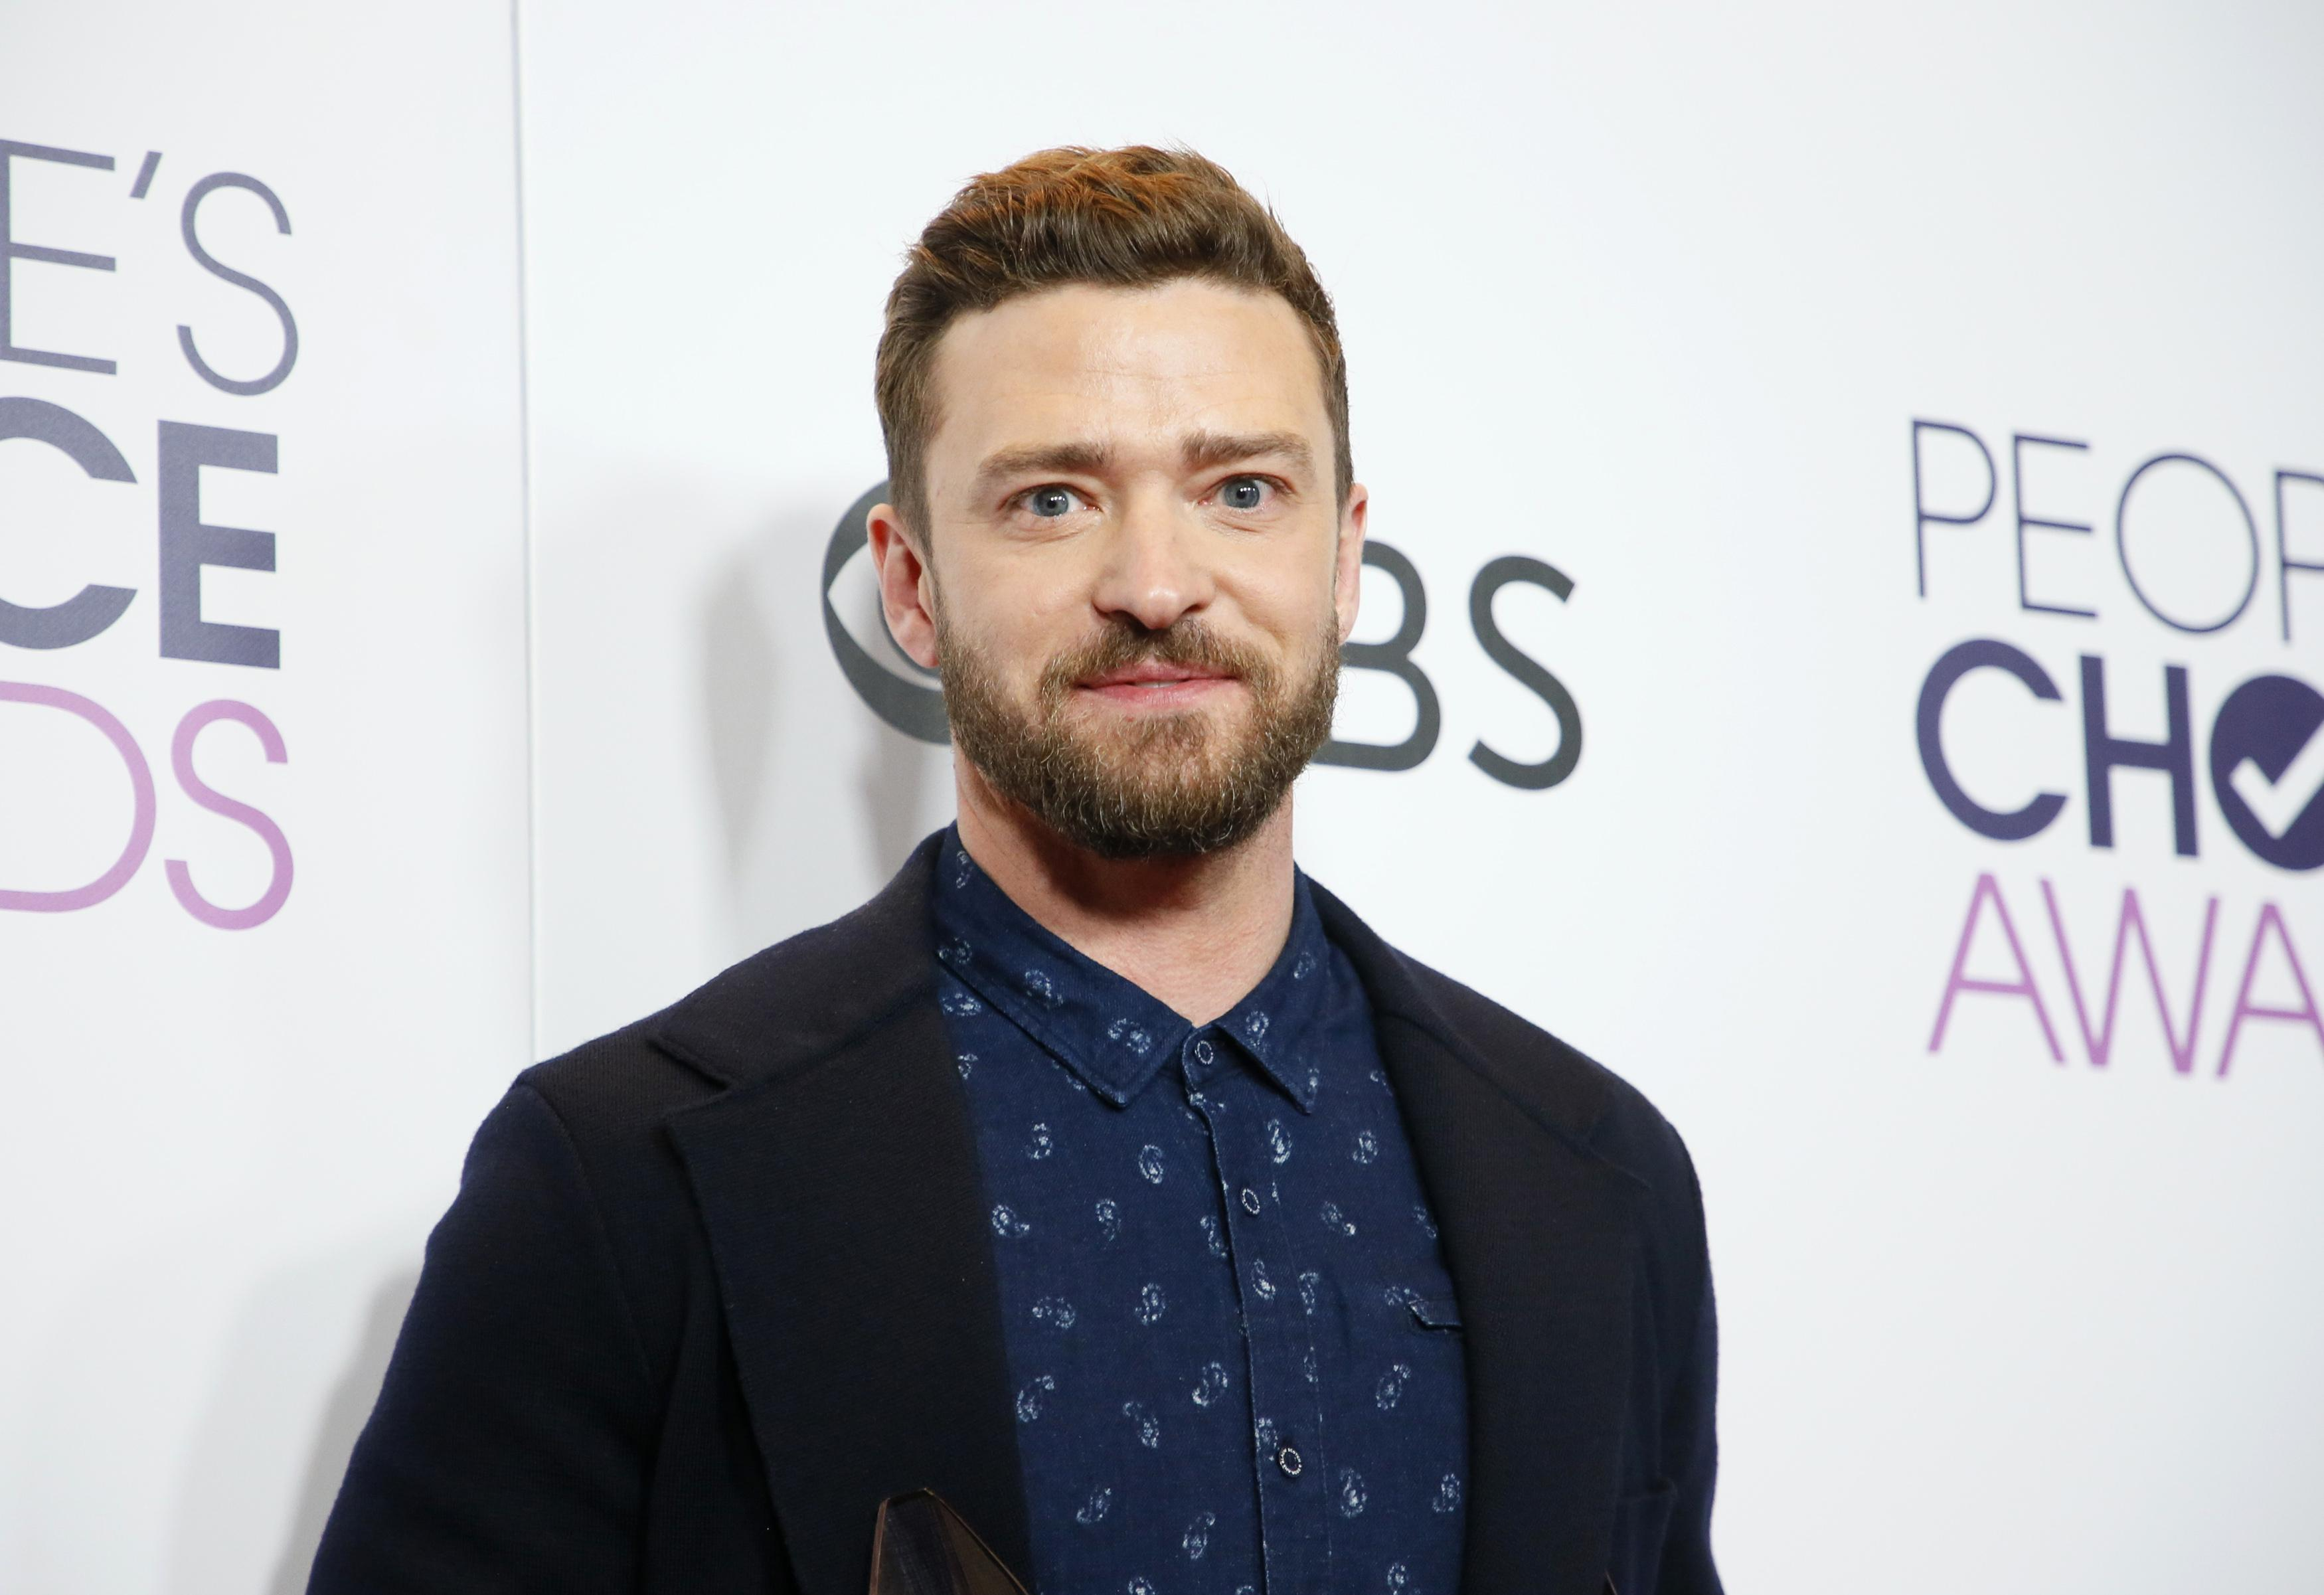 Justin Timberlake Explains Why He Left NSYNC to Pursue a Solo Career